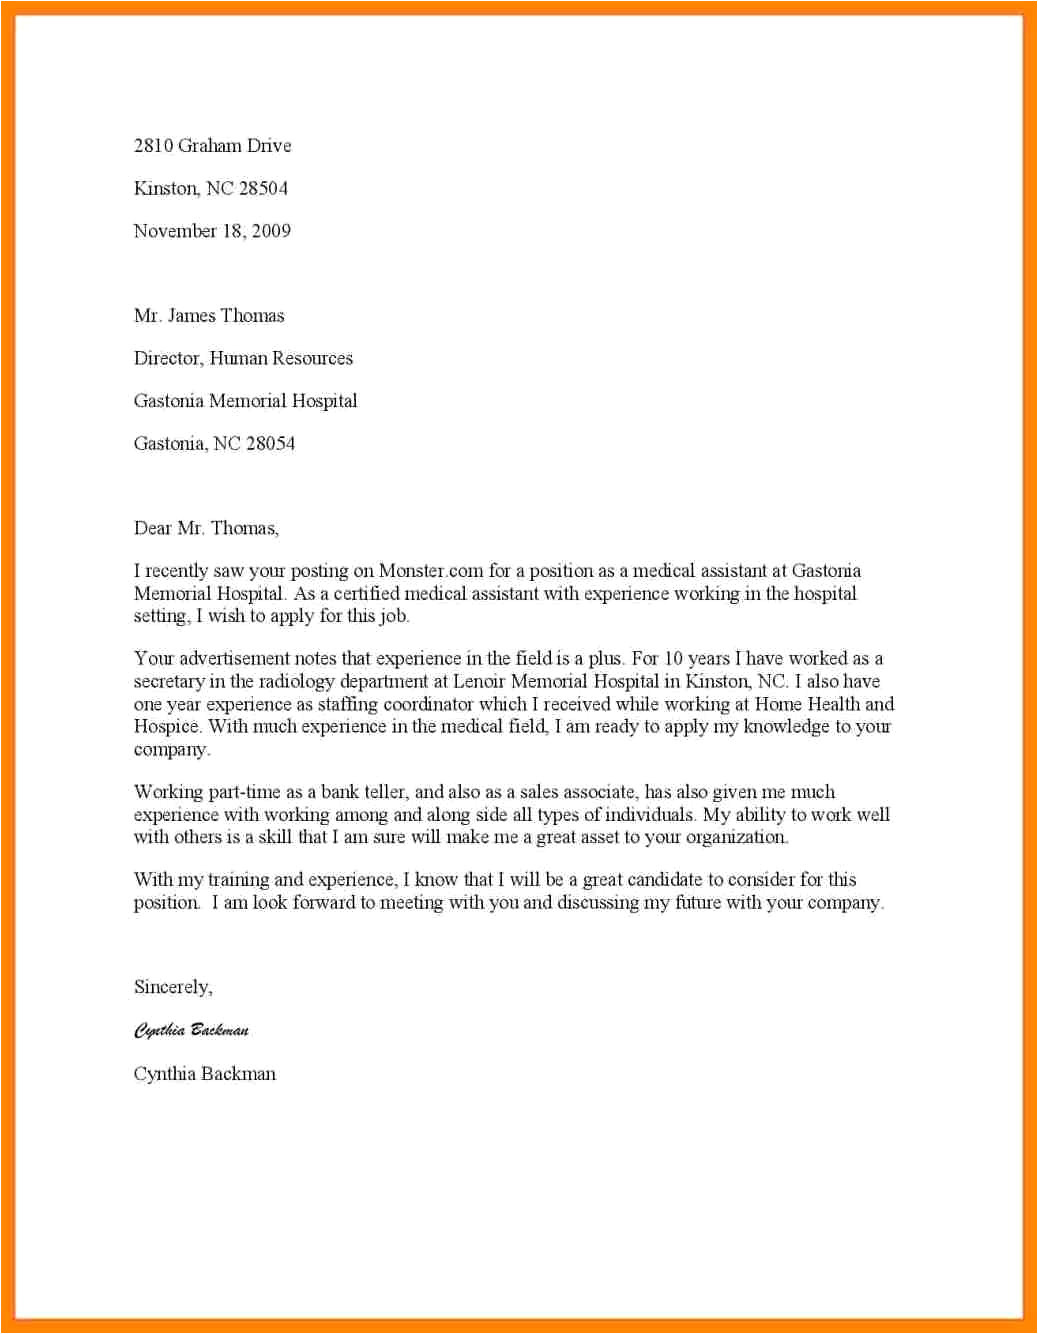 Samples Of Cover Letters for Medical assistant Best Cover Letter for Medical assistant Job